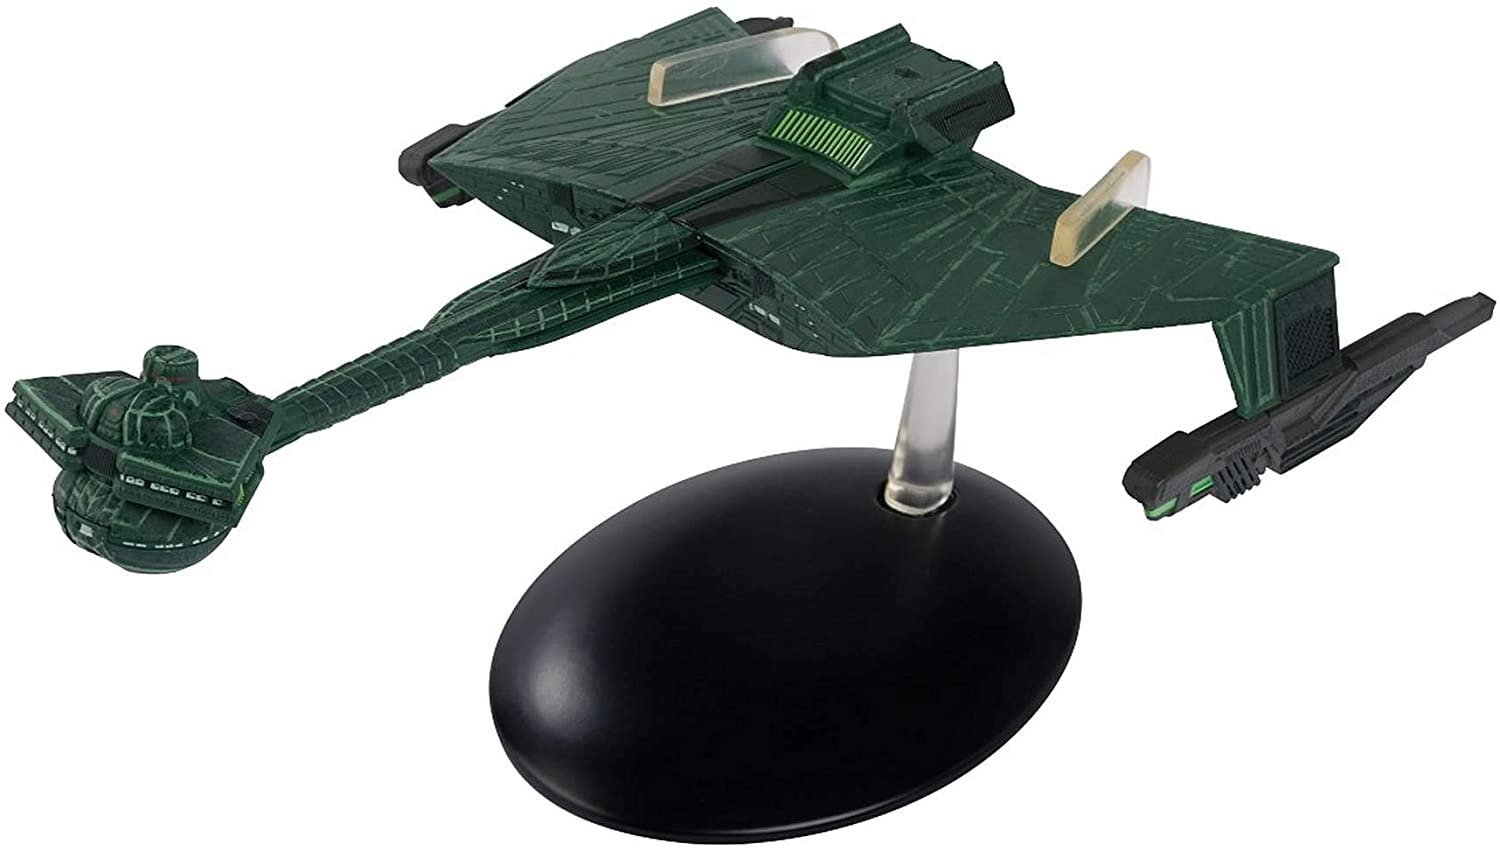 Star Trek The Official Discovery Starships Collection   Klingon D7-Class Battle Cruiser with Magazine Issue 26 by Eaglemoss Hero Collector